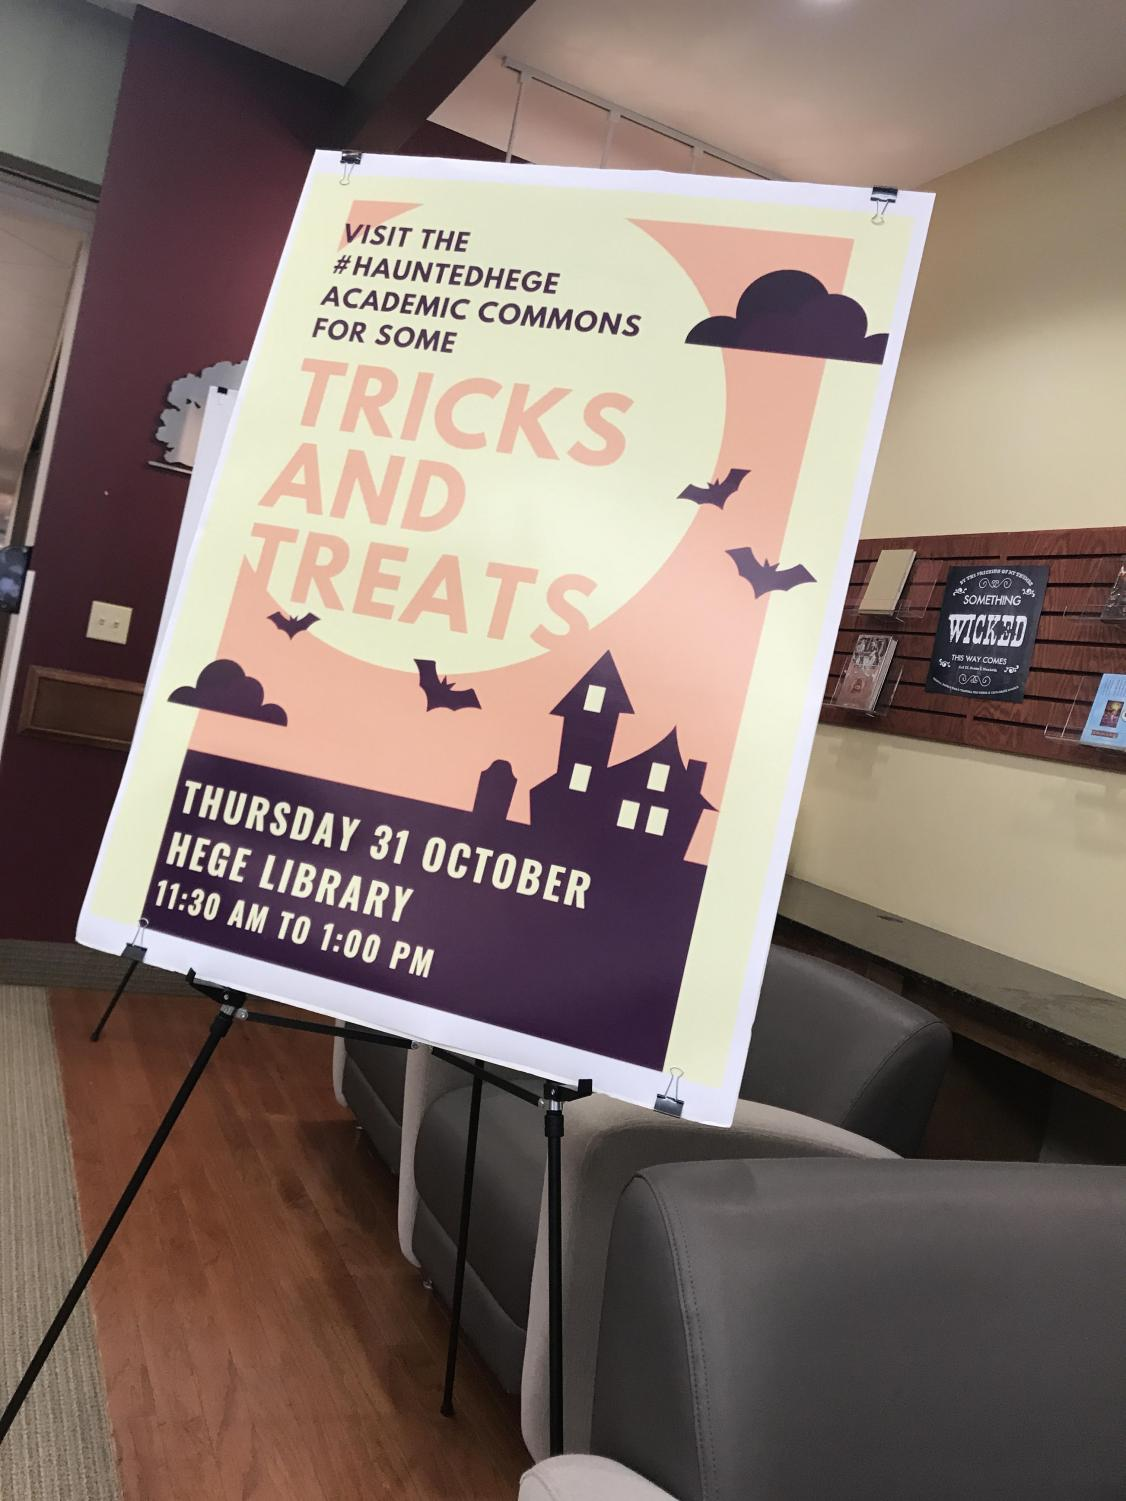 Sign posted in Hege Library advertising Haunted Hege event.